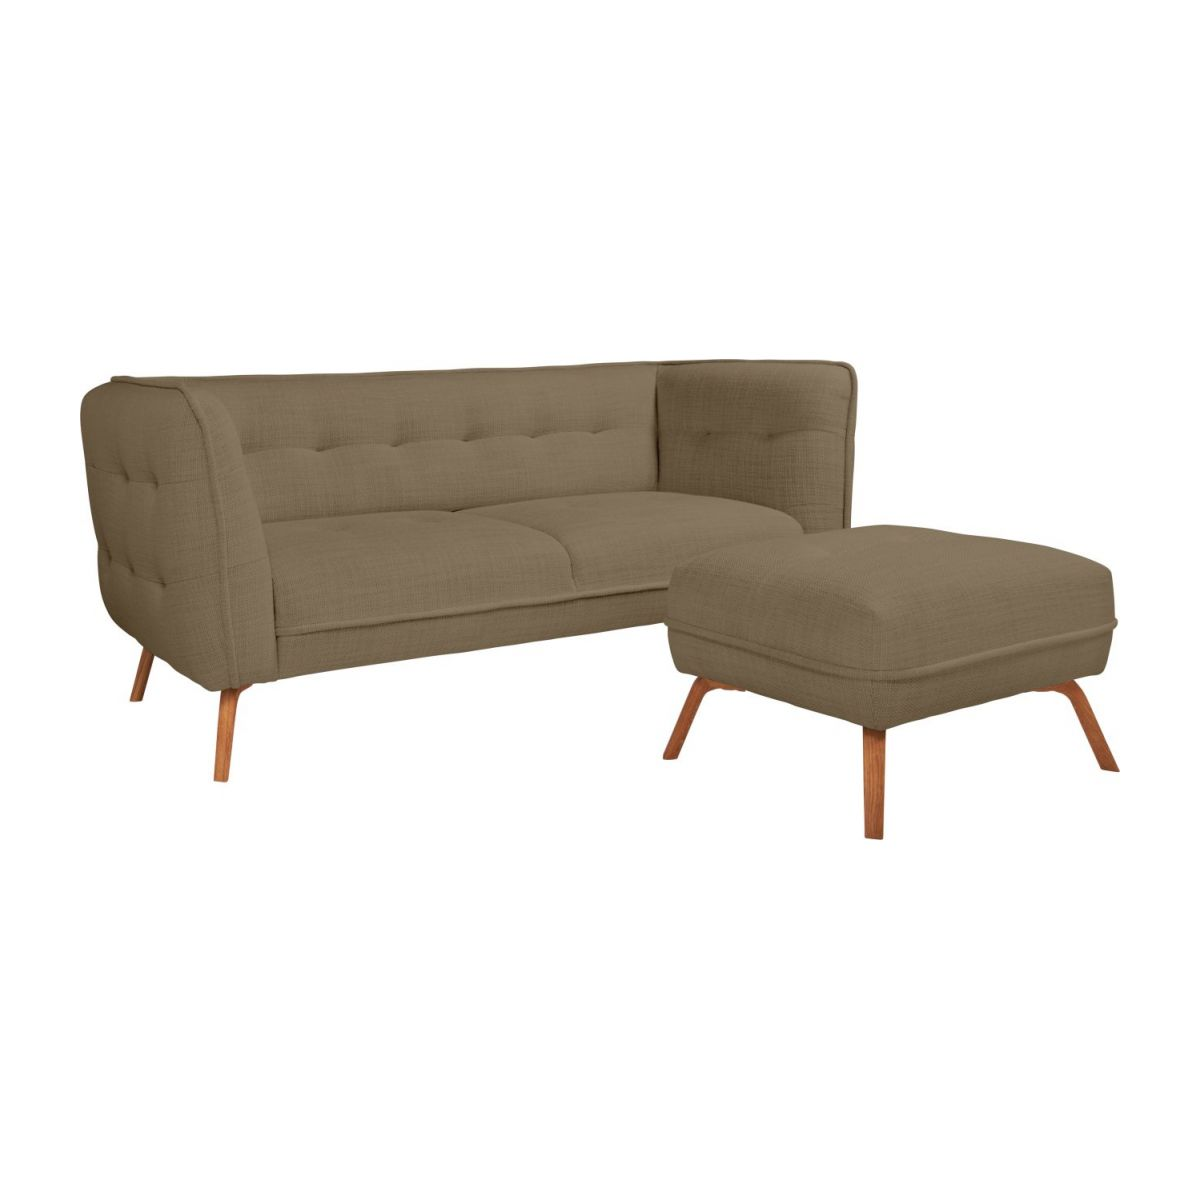 2 seater sofa in Fasoli fabric, jatoba brown and oak legs n°10